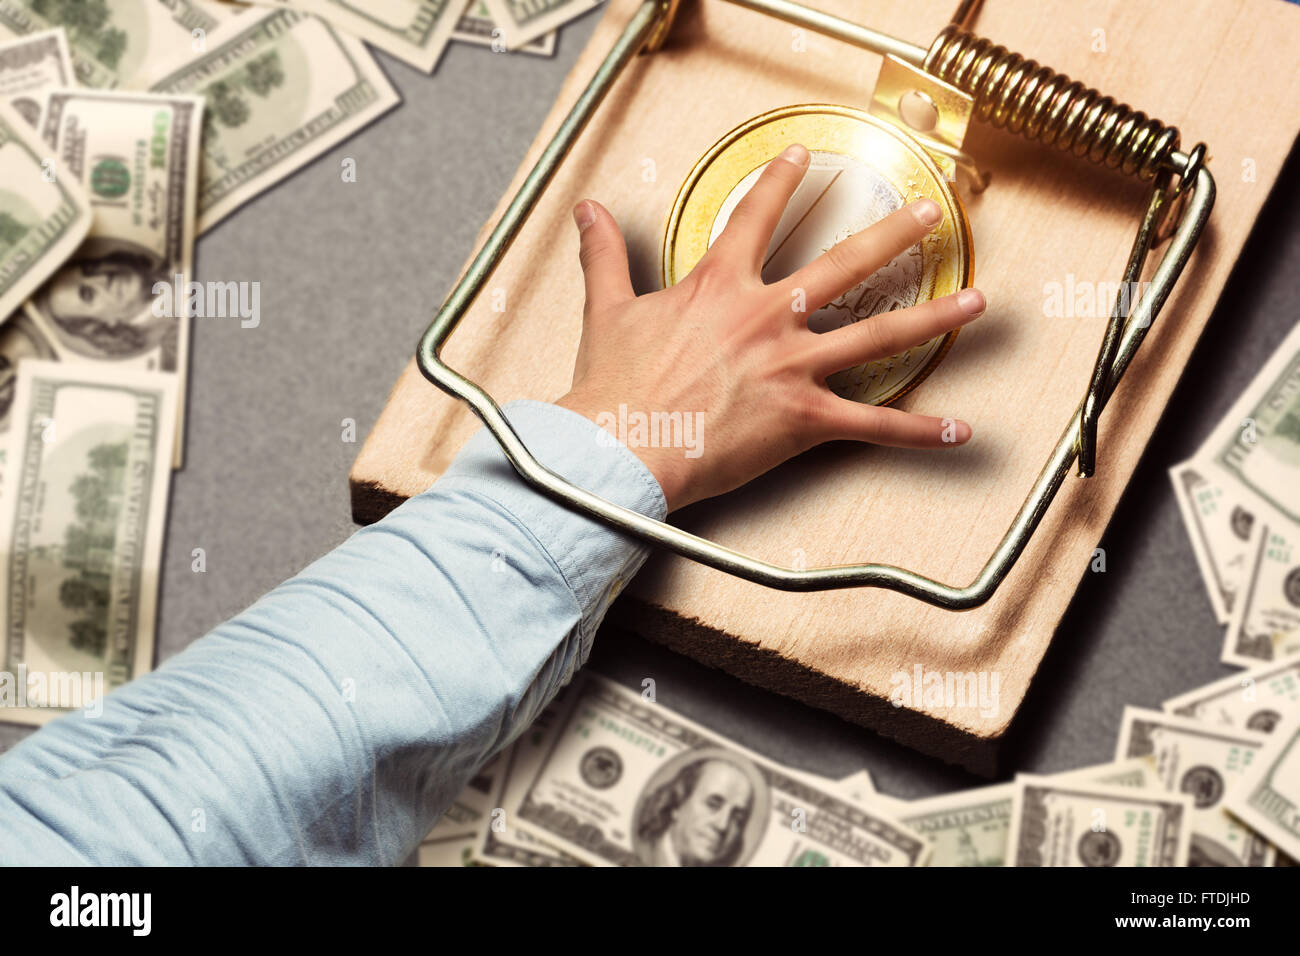 Male hand picking a gold coin - Stock Image